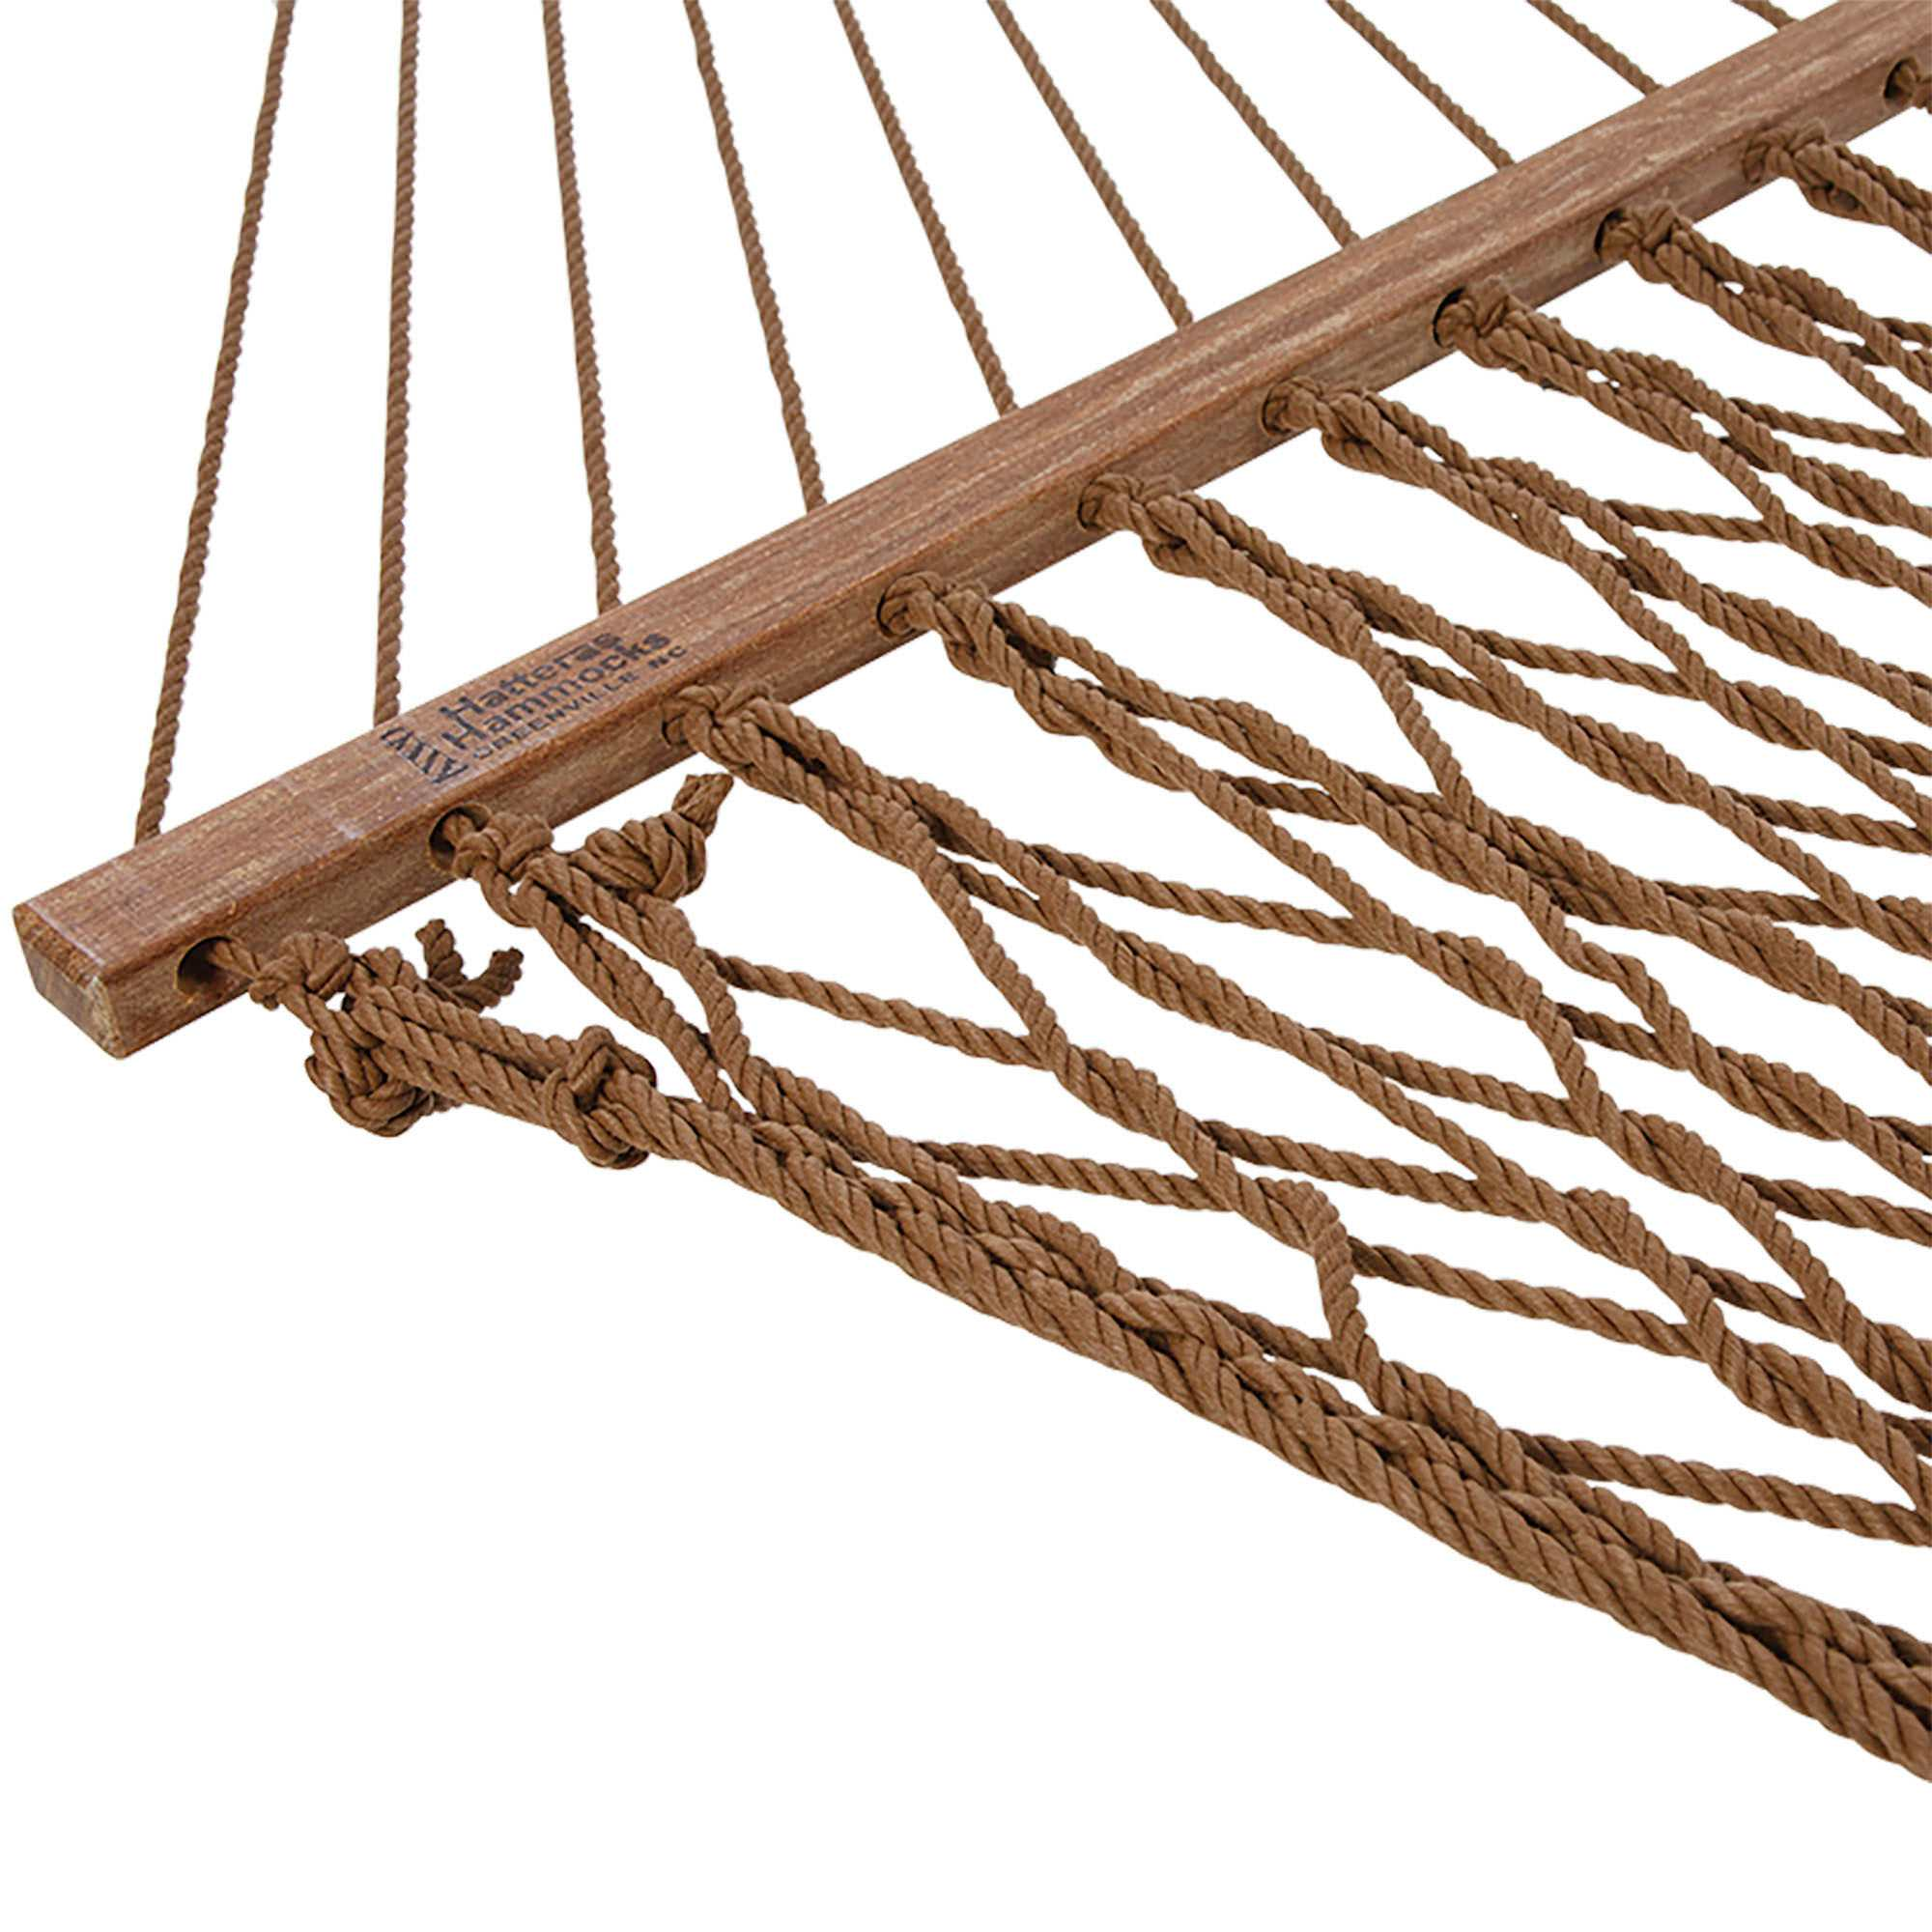 Antique Brown Deluxe Duracord Rope Hammock